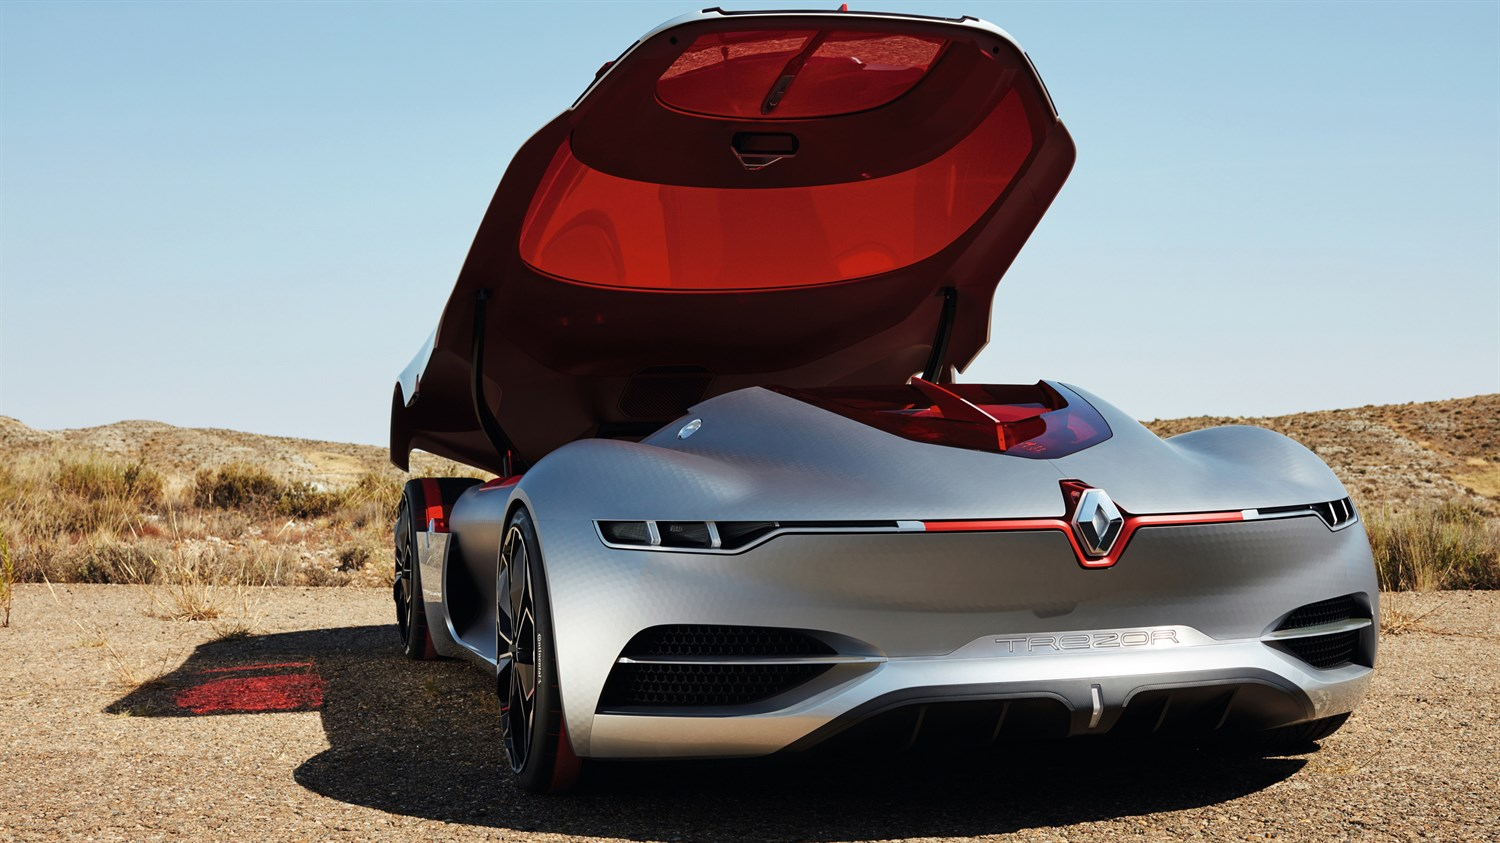 Renault TREZOR concept car exterior design back view with sliding roof door open